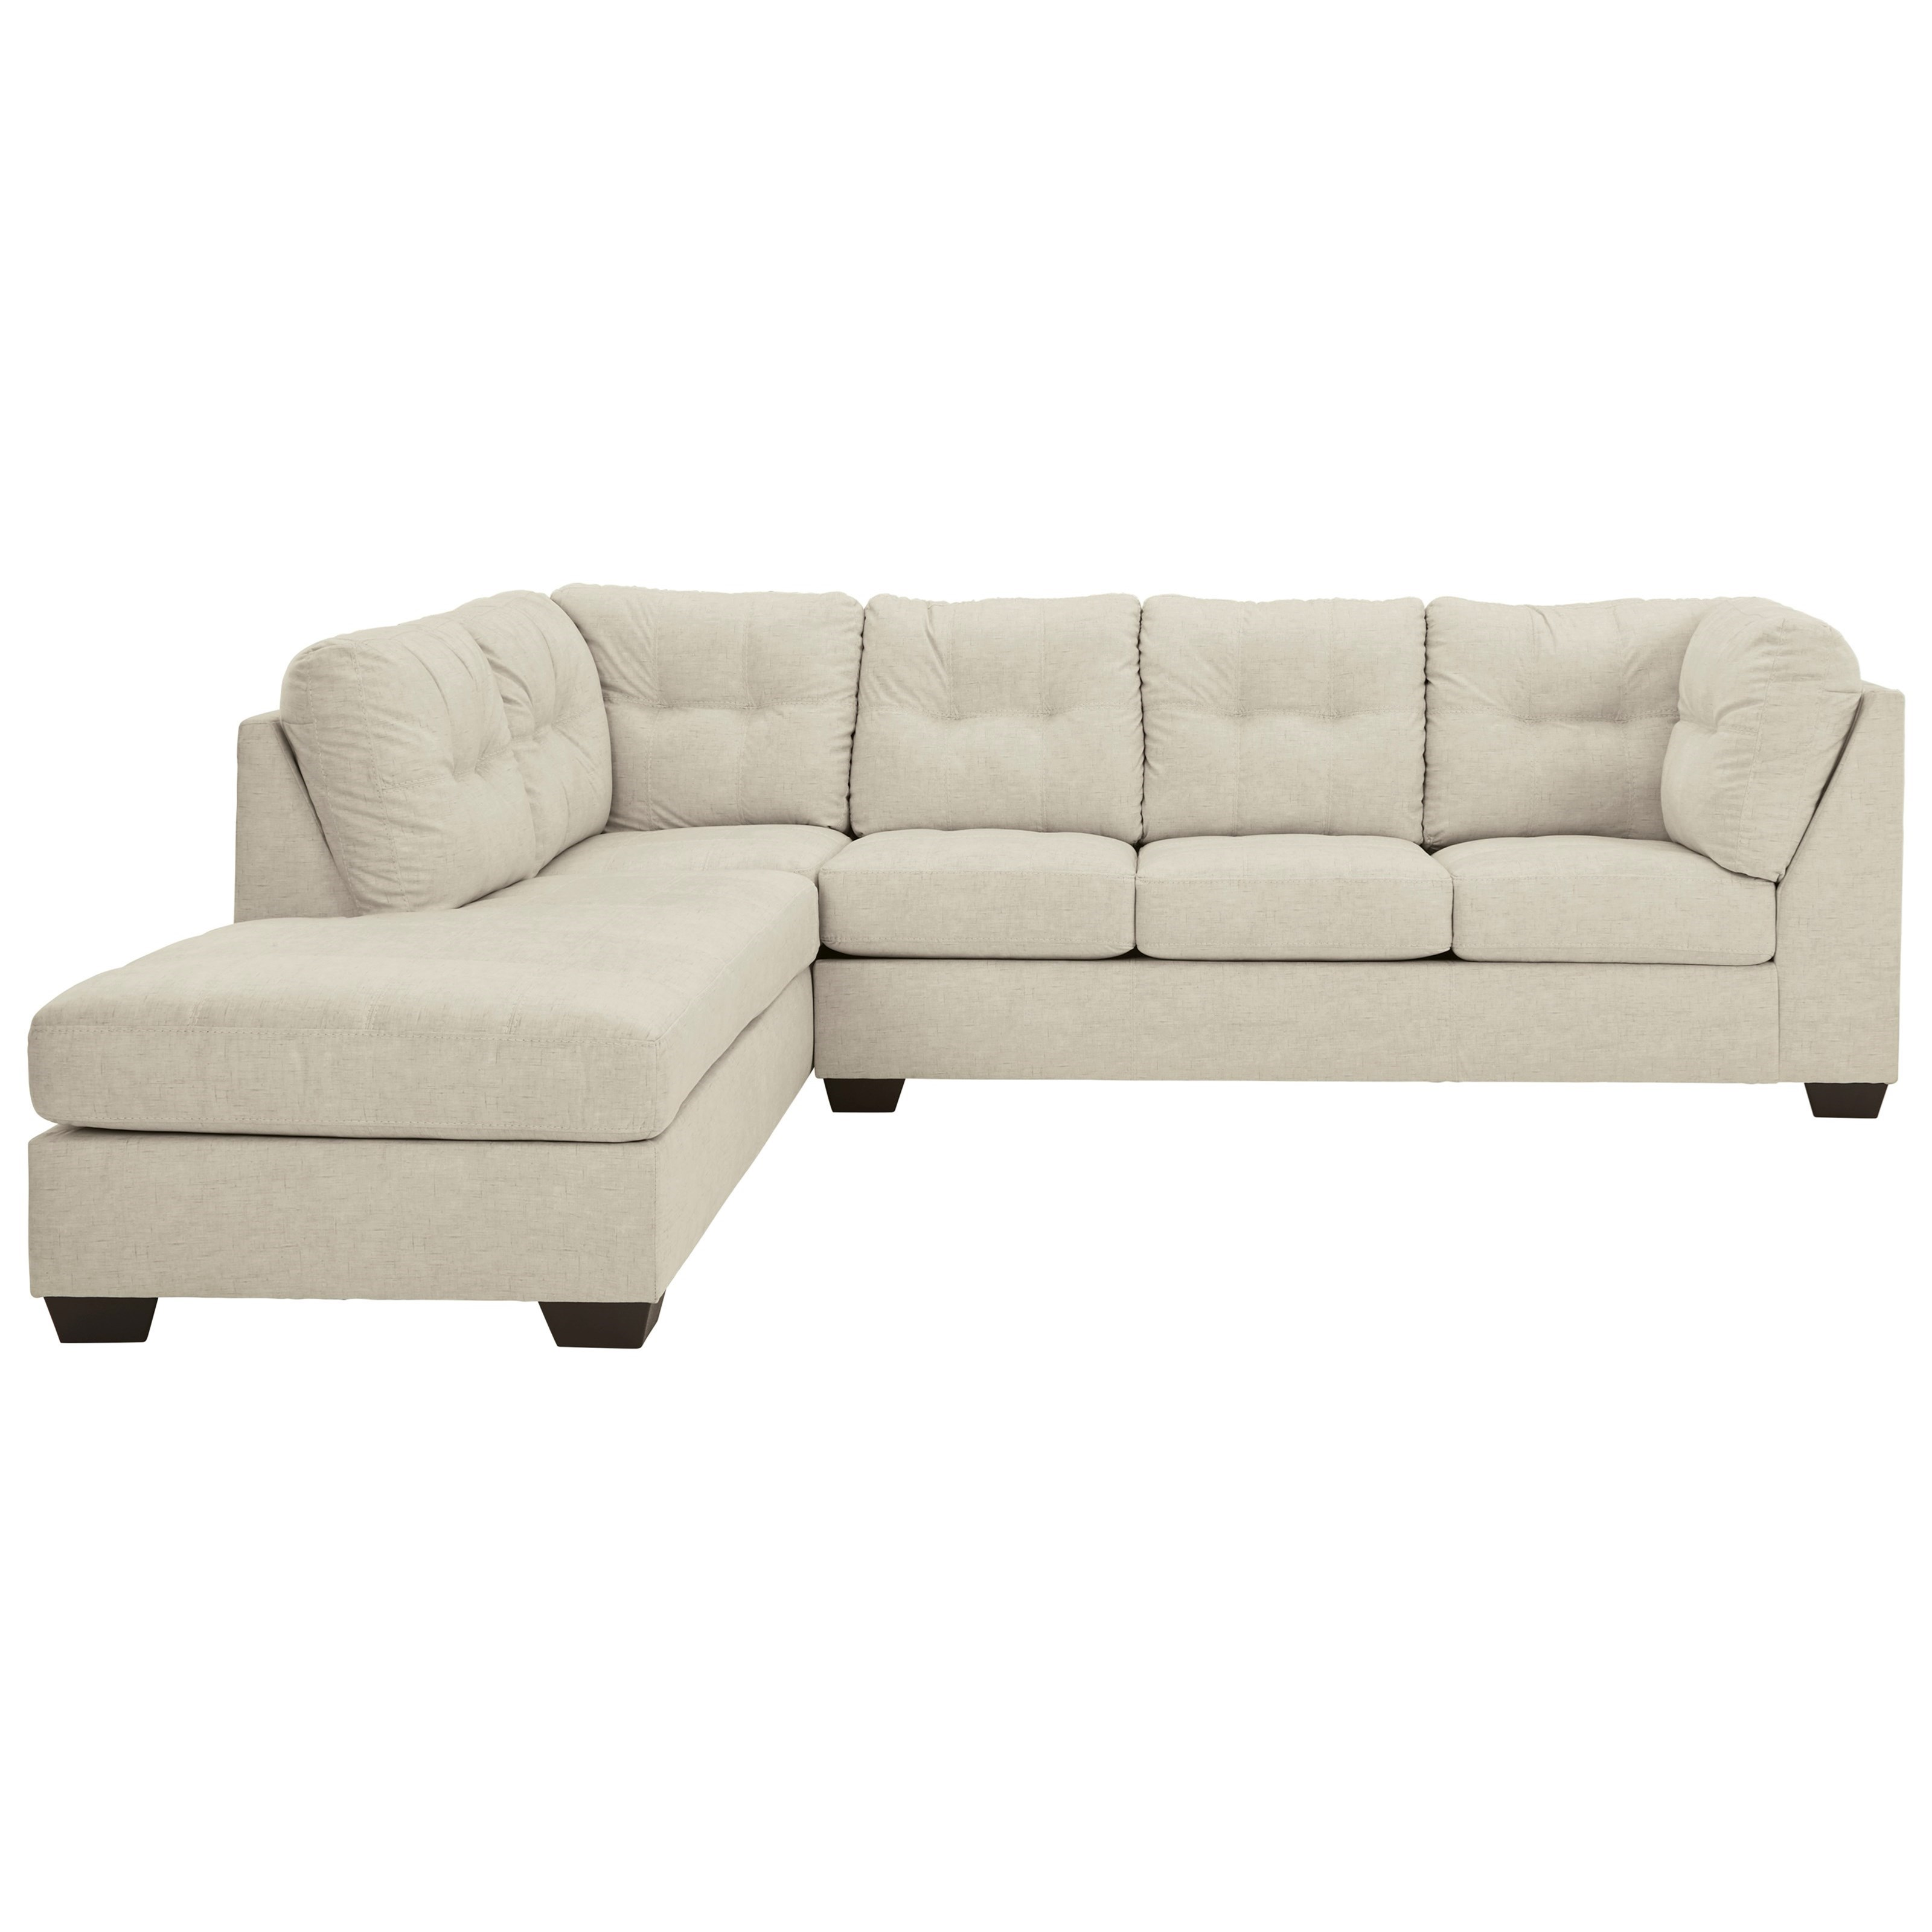 Falkirk 2-Piece Sectional with Chaise by Benchcraft at Zak's Warehouse Clearance Center